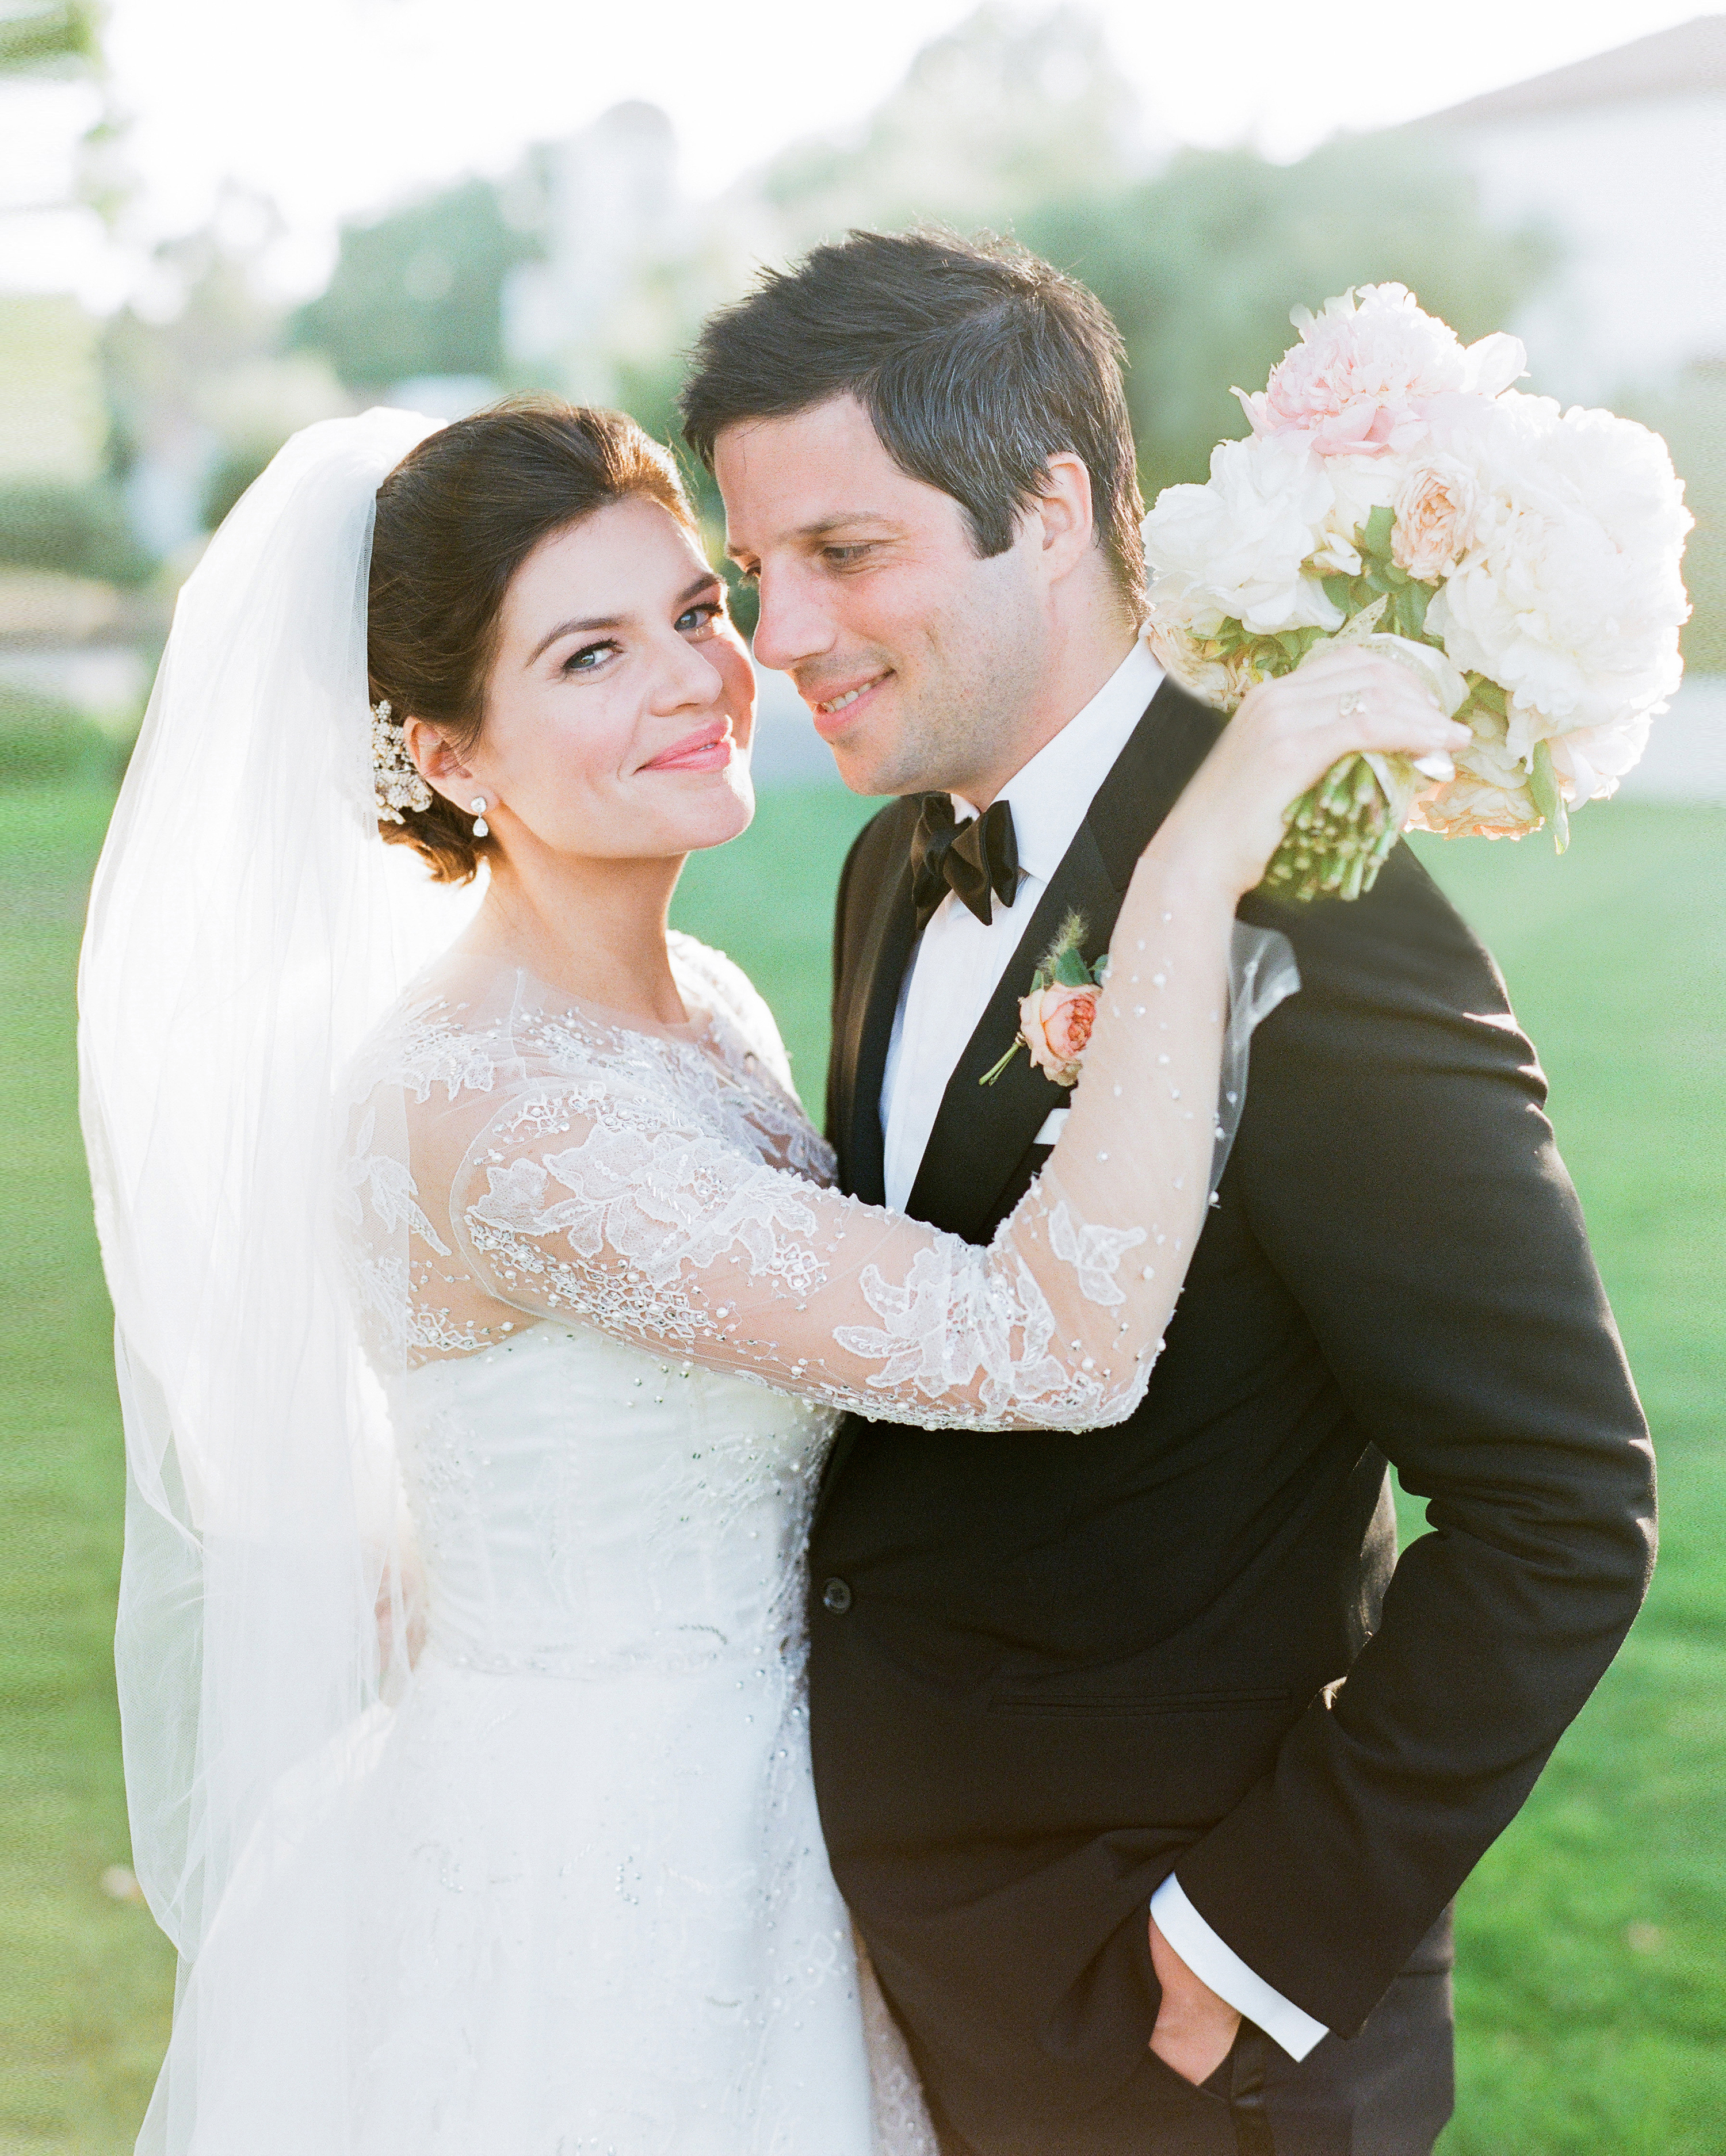 Casey Wilson and David Caspe's California Wedding